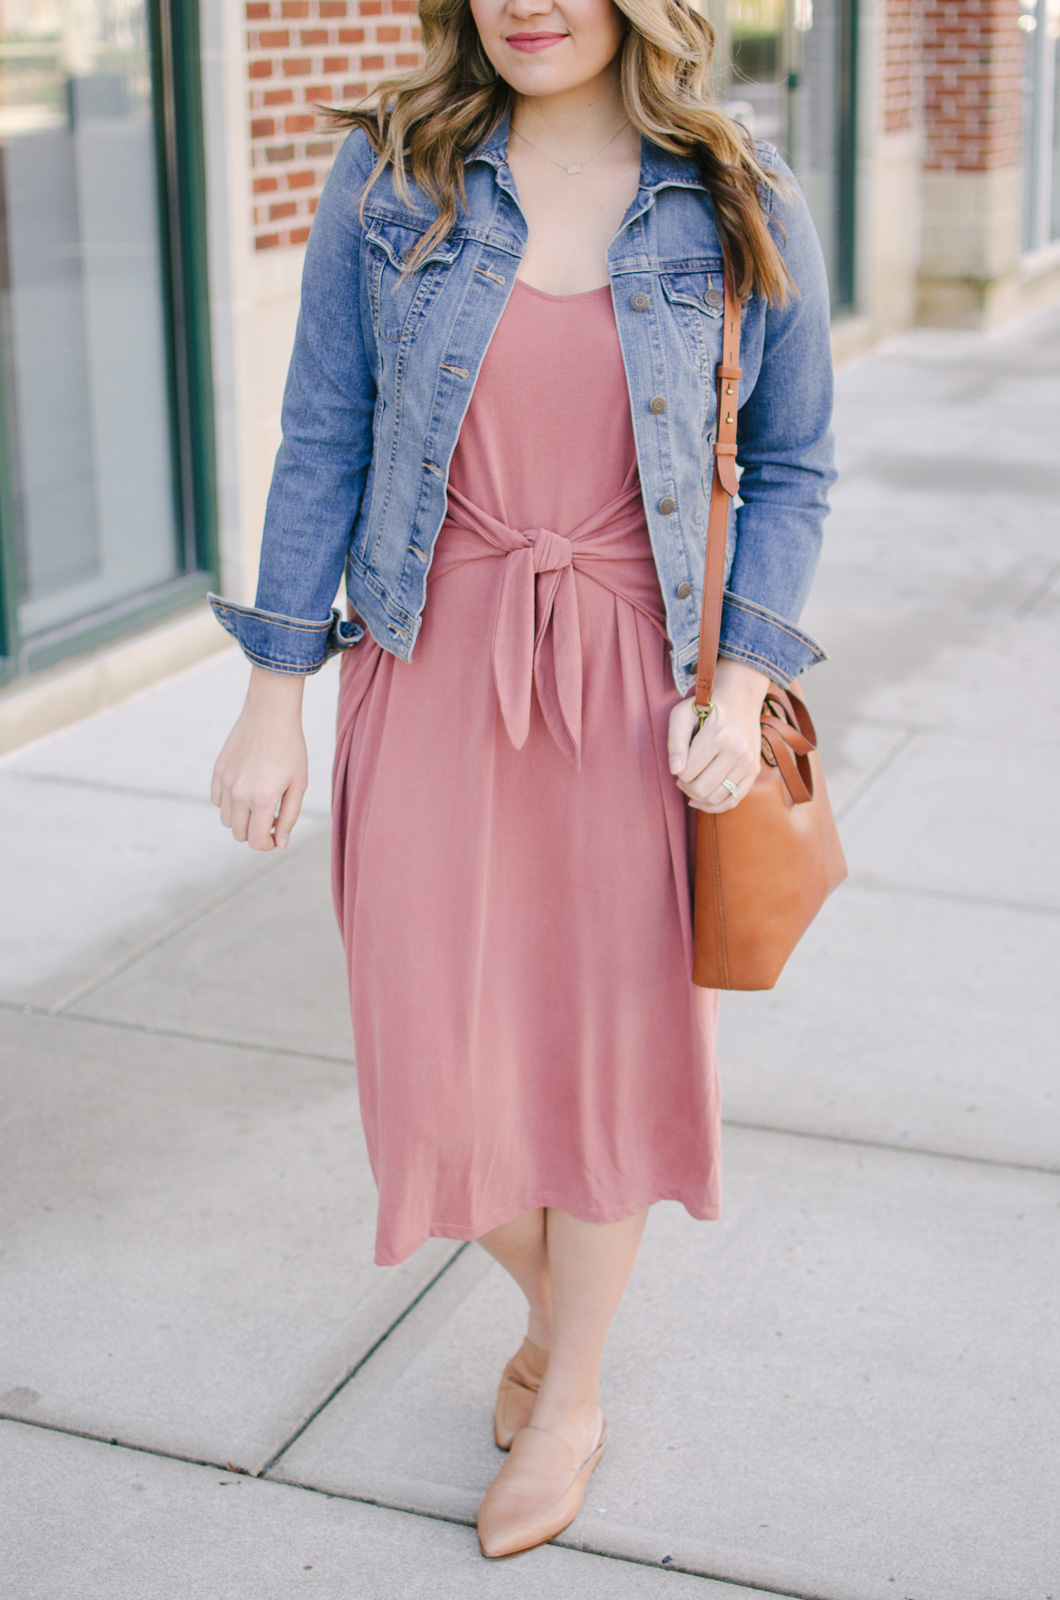 how wear a midi dress | Get outfit details for this spring midi dress outfit or see more cute spring outfit ideas at bylaurenm.com!